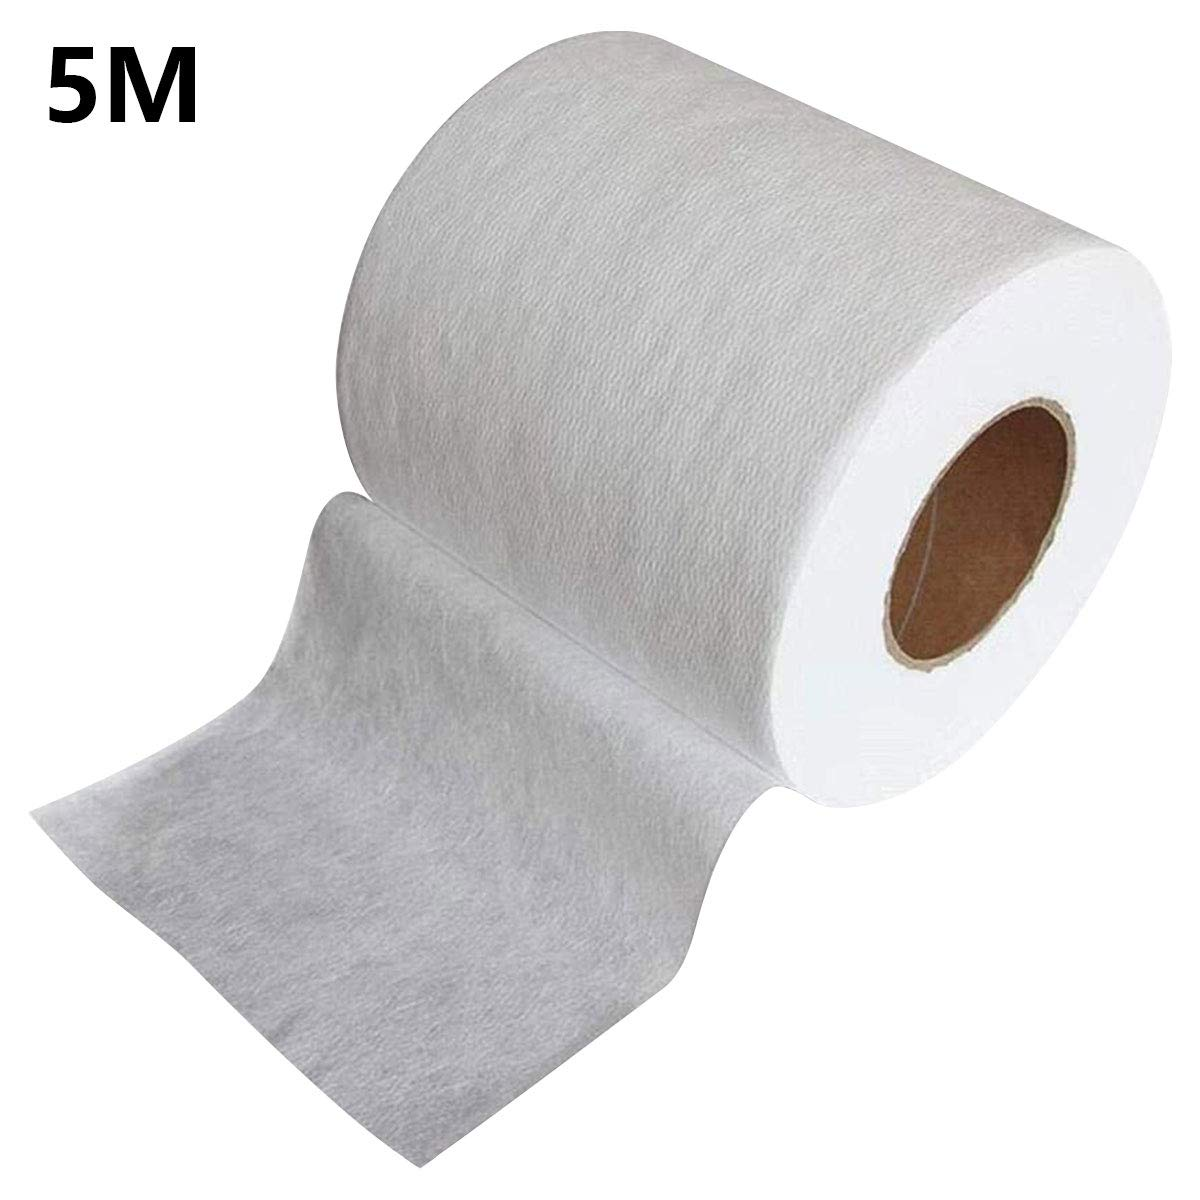 Non-Woven Fabric Melt-Blown Cloth, Disposable Middle Layer Filter Microfiber Fabric Polypropylene Sediment Filters for Filtering, Filtering Efficiency Greater Than 95% (5M)